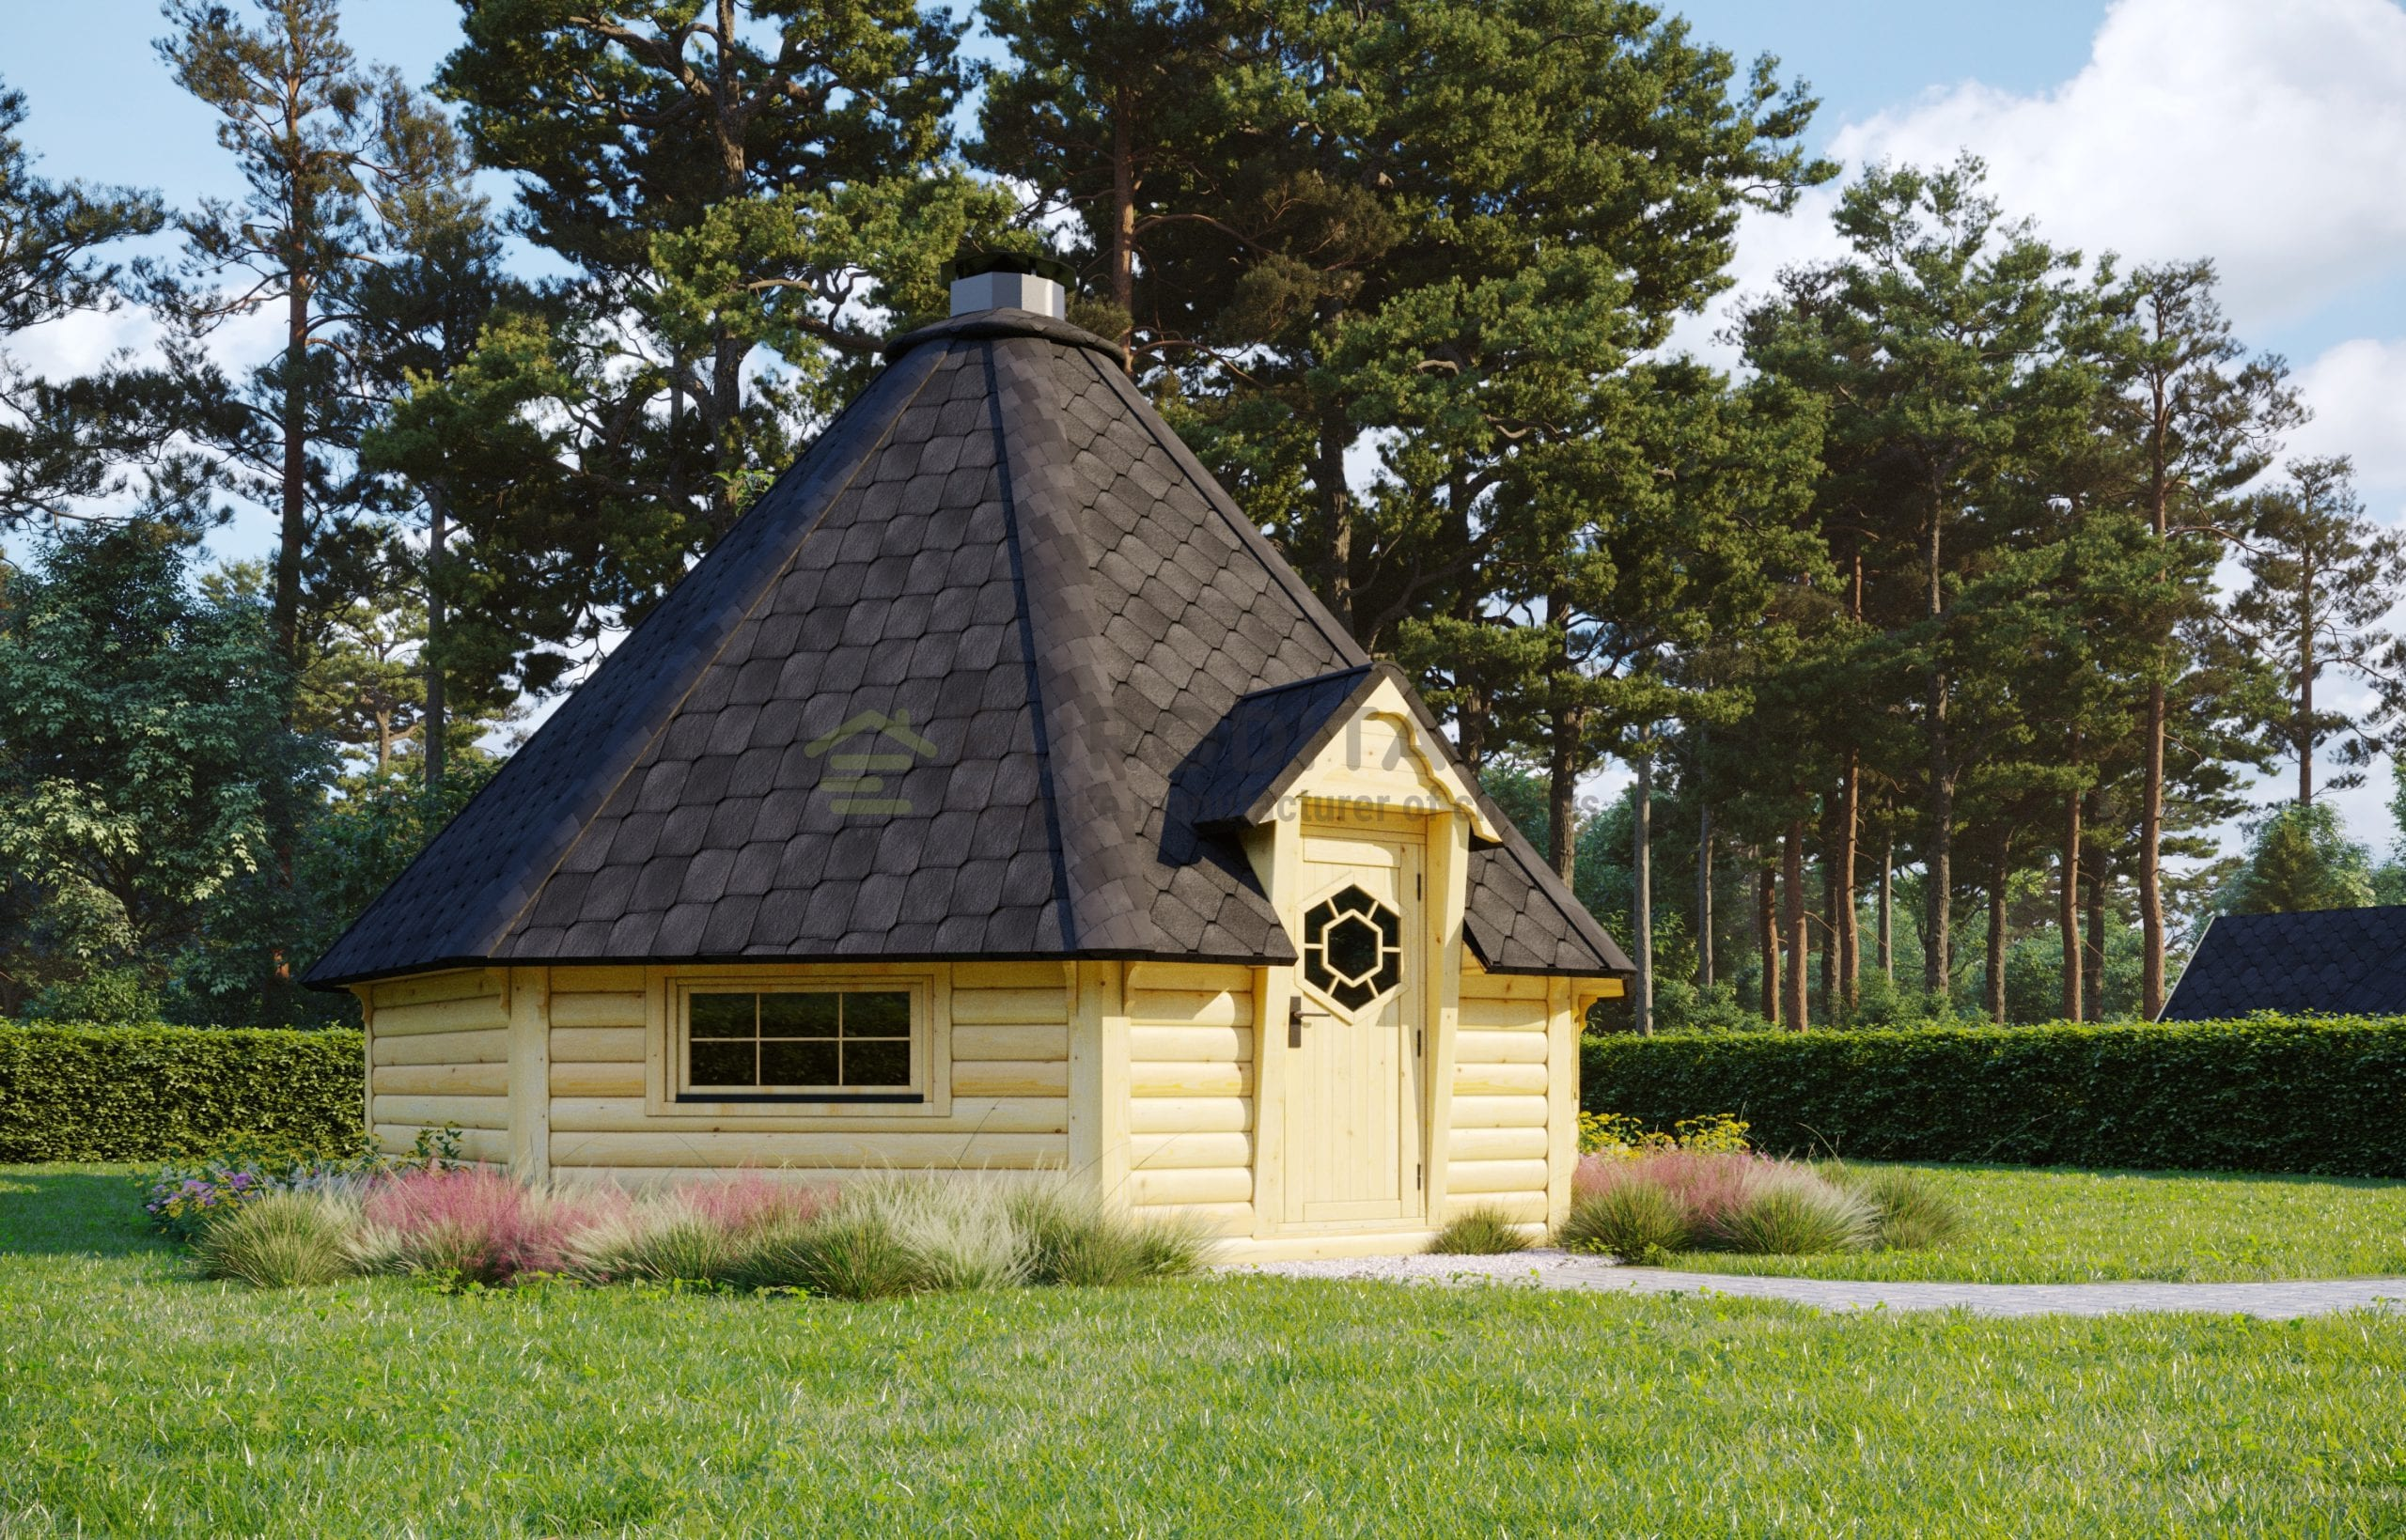 BBQ Hut 25m2 with Extension 2.5m